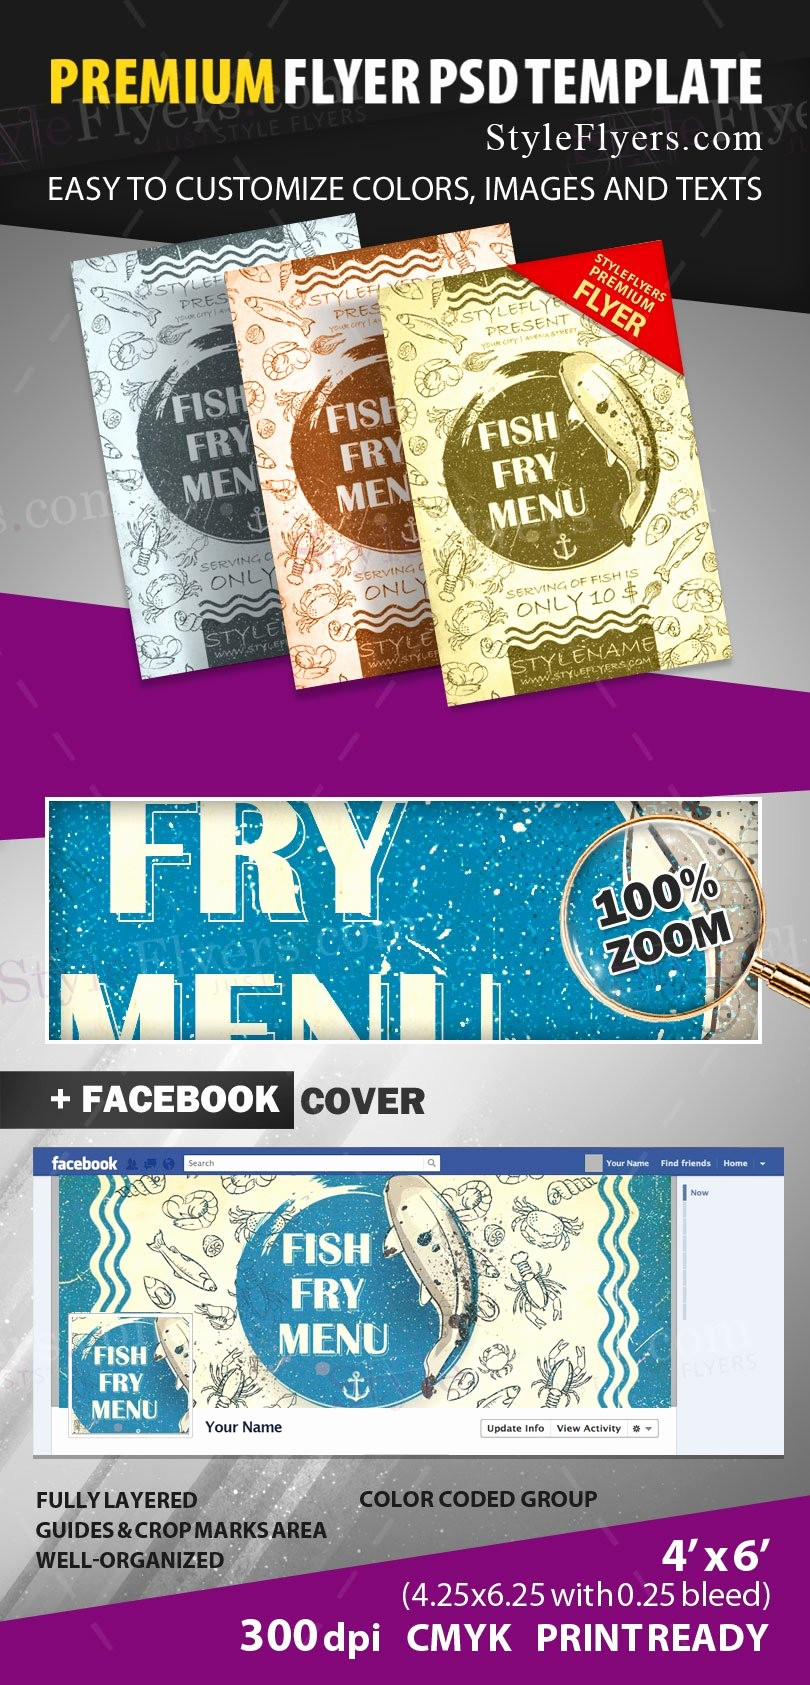 Free Fish Fry Flyer Templates Beautiful Fish Fry Menu Psd Flyer Template Styleflyers